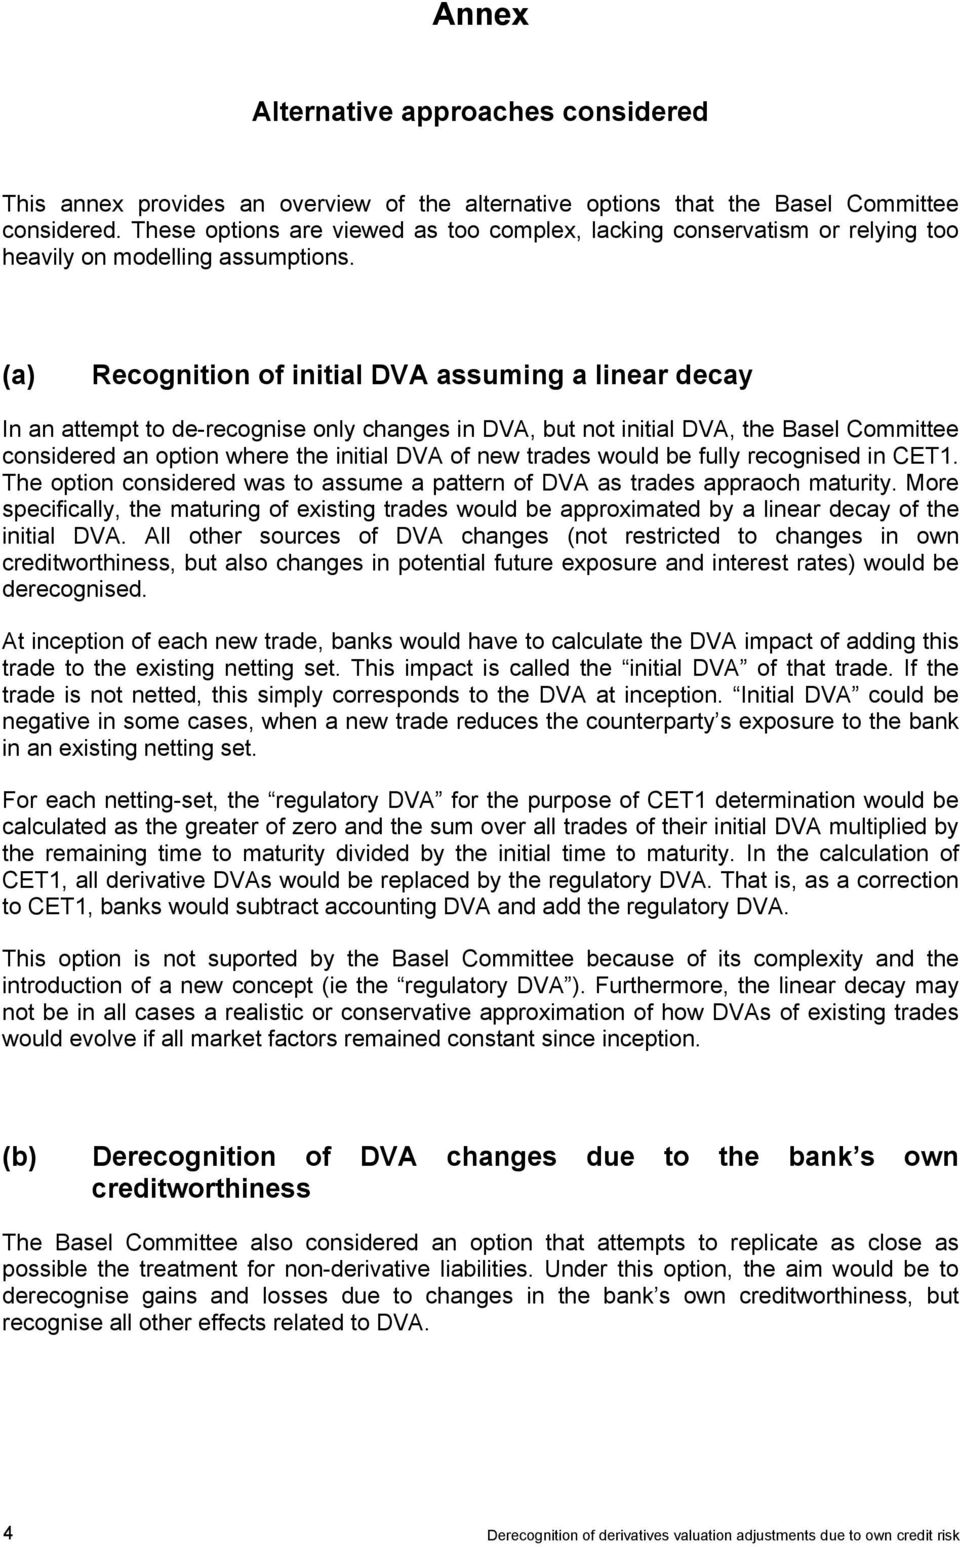 (a) Recognition of initial DVA assuming a linear decay In an attempt to de-recognise only changes in DVA, but not initial DVA, the Basel Committee considered an option where the initial DVA of new